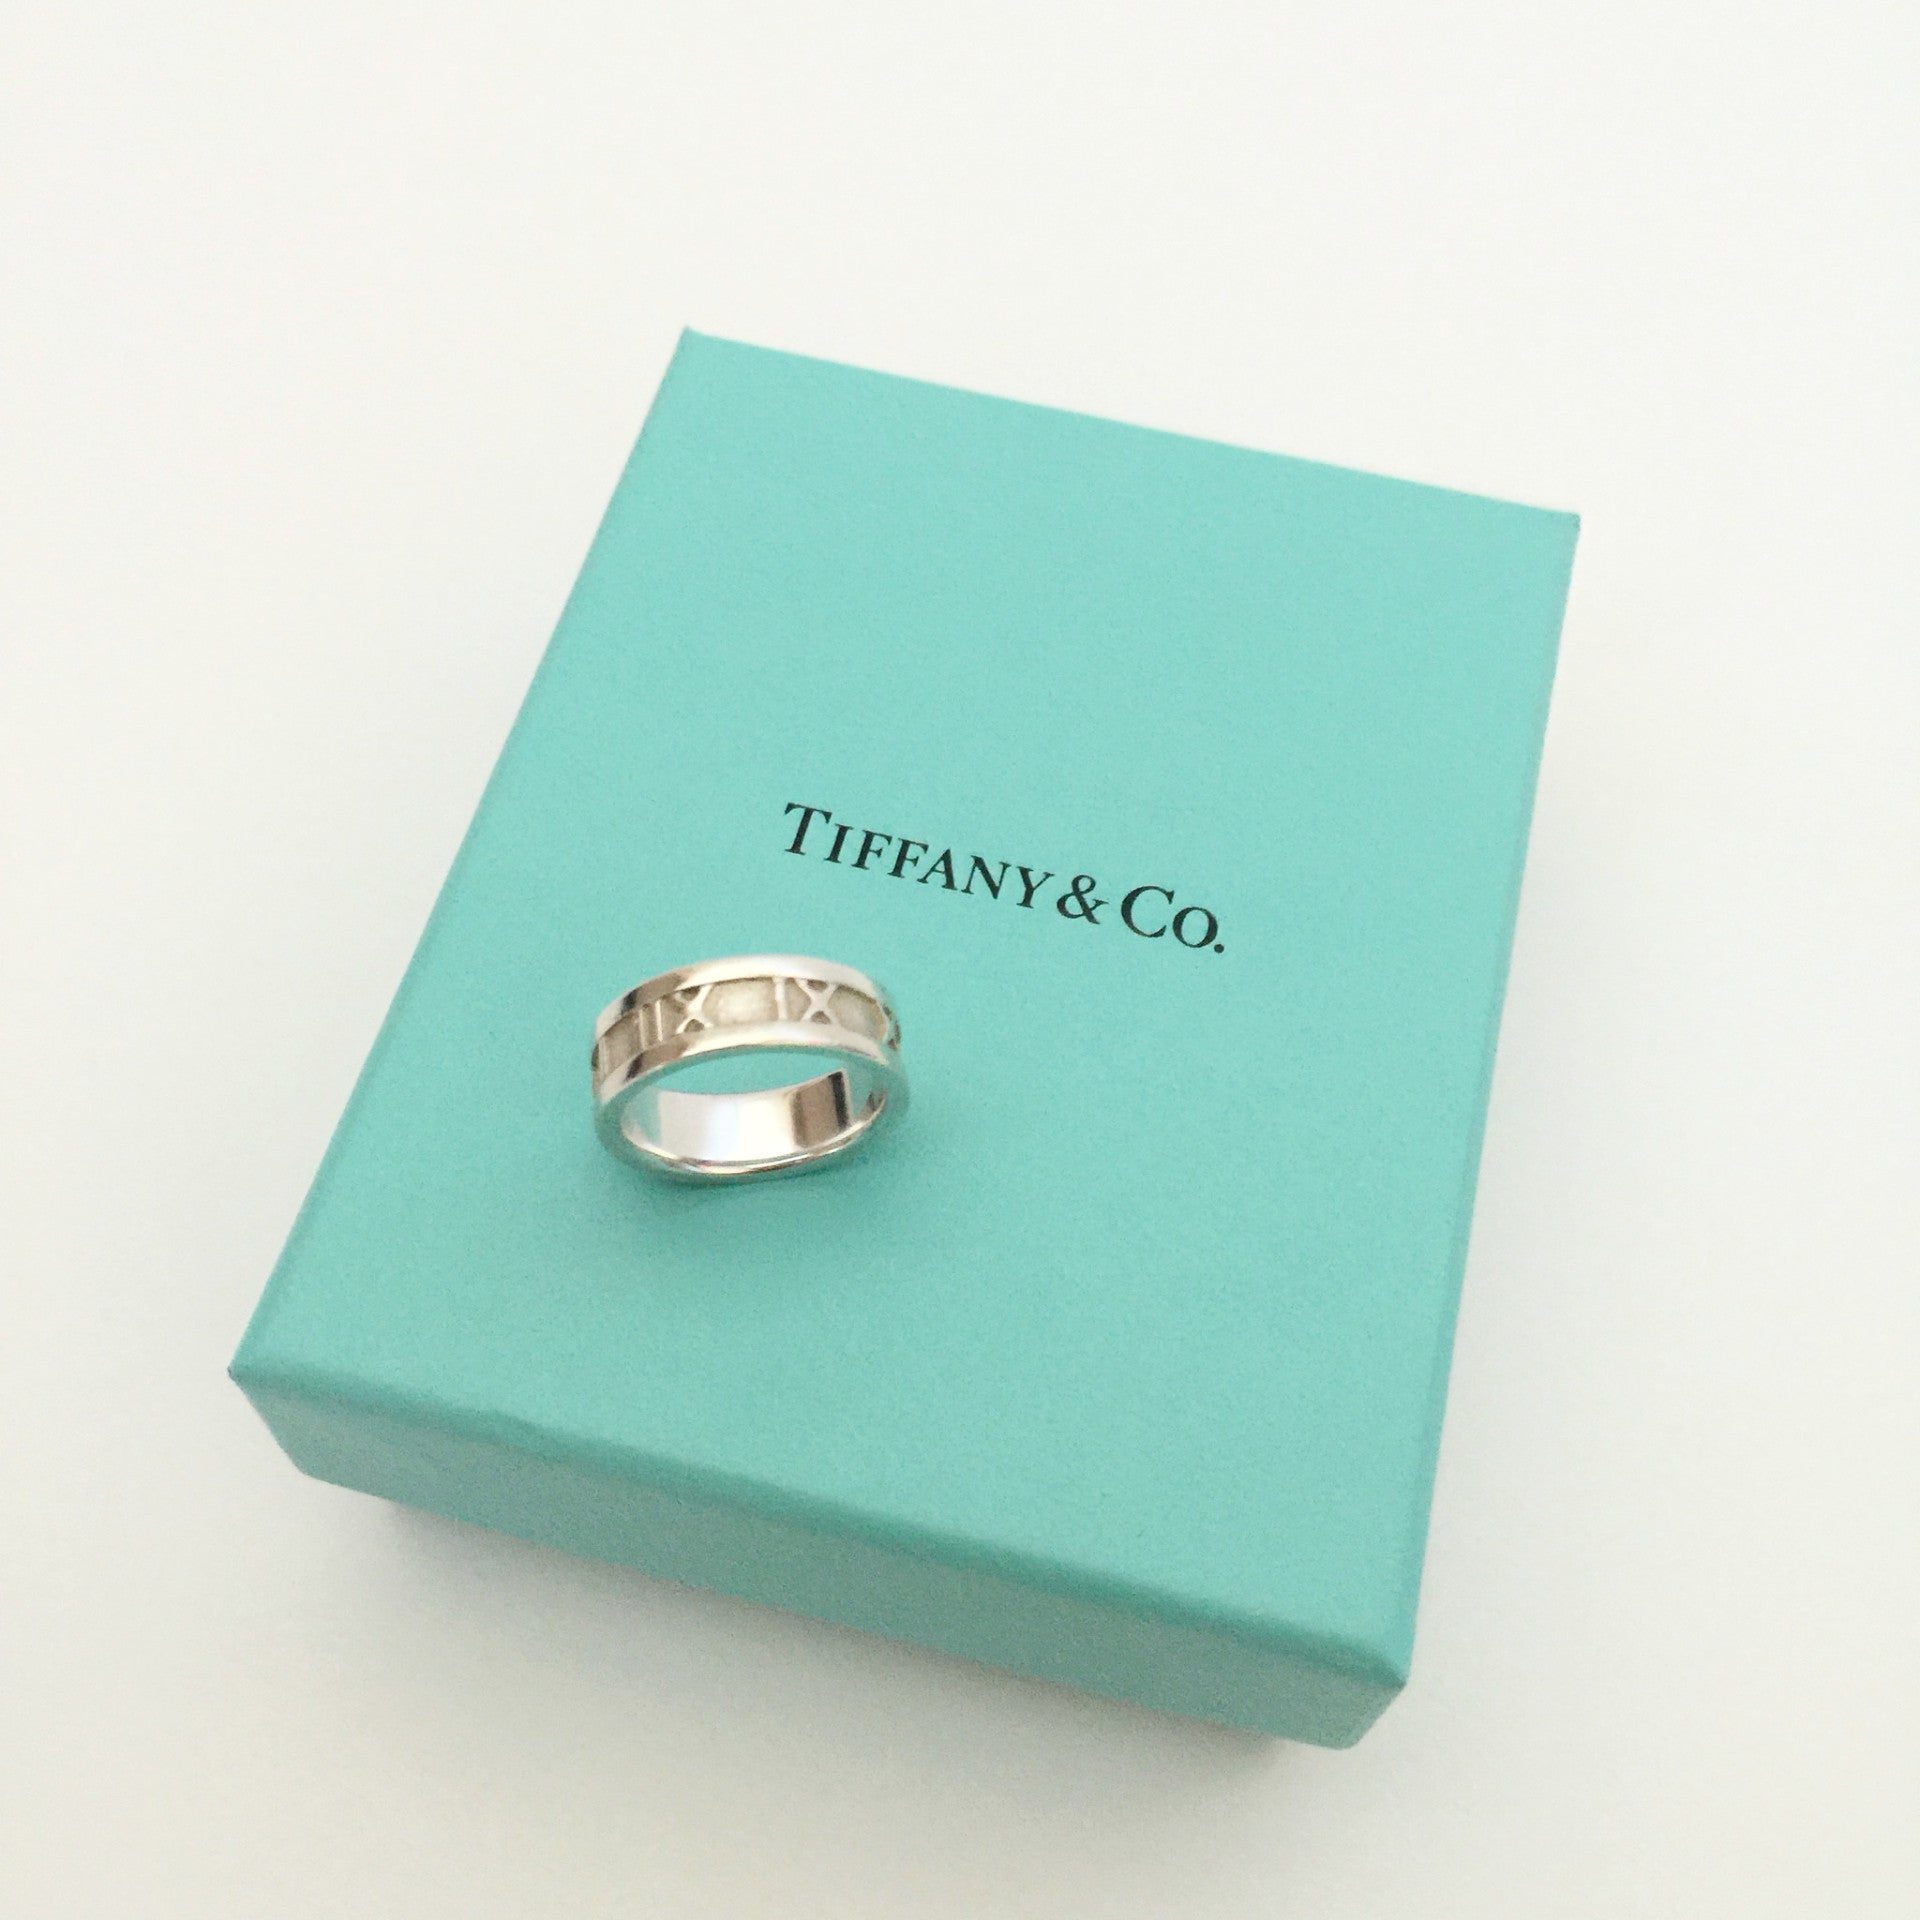 Authentic TIFFANY & CO Atlas Ring Size 5.5